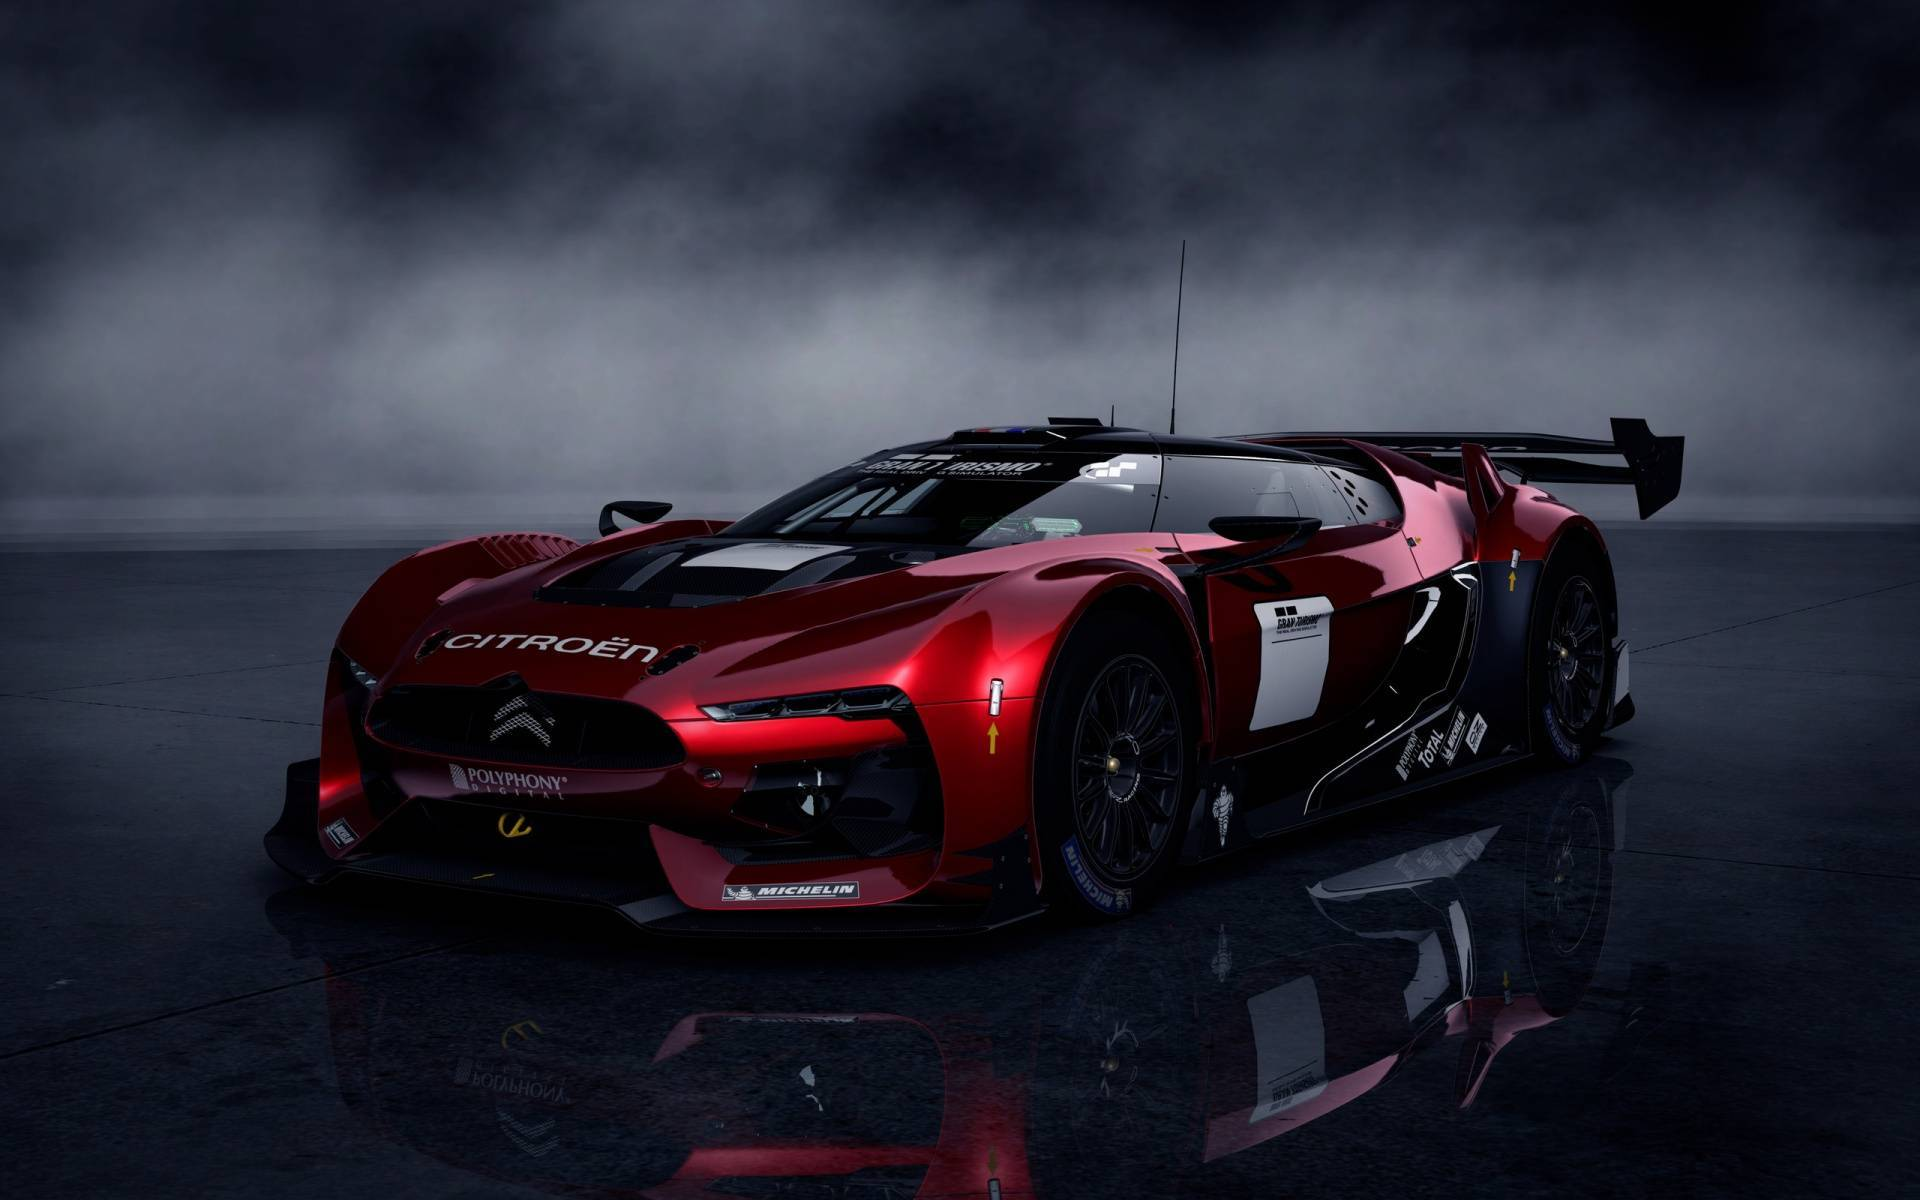 Nothing found for Citroen Sports Car Wallpaper Wallpapers New